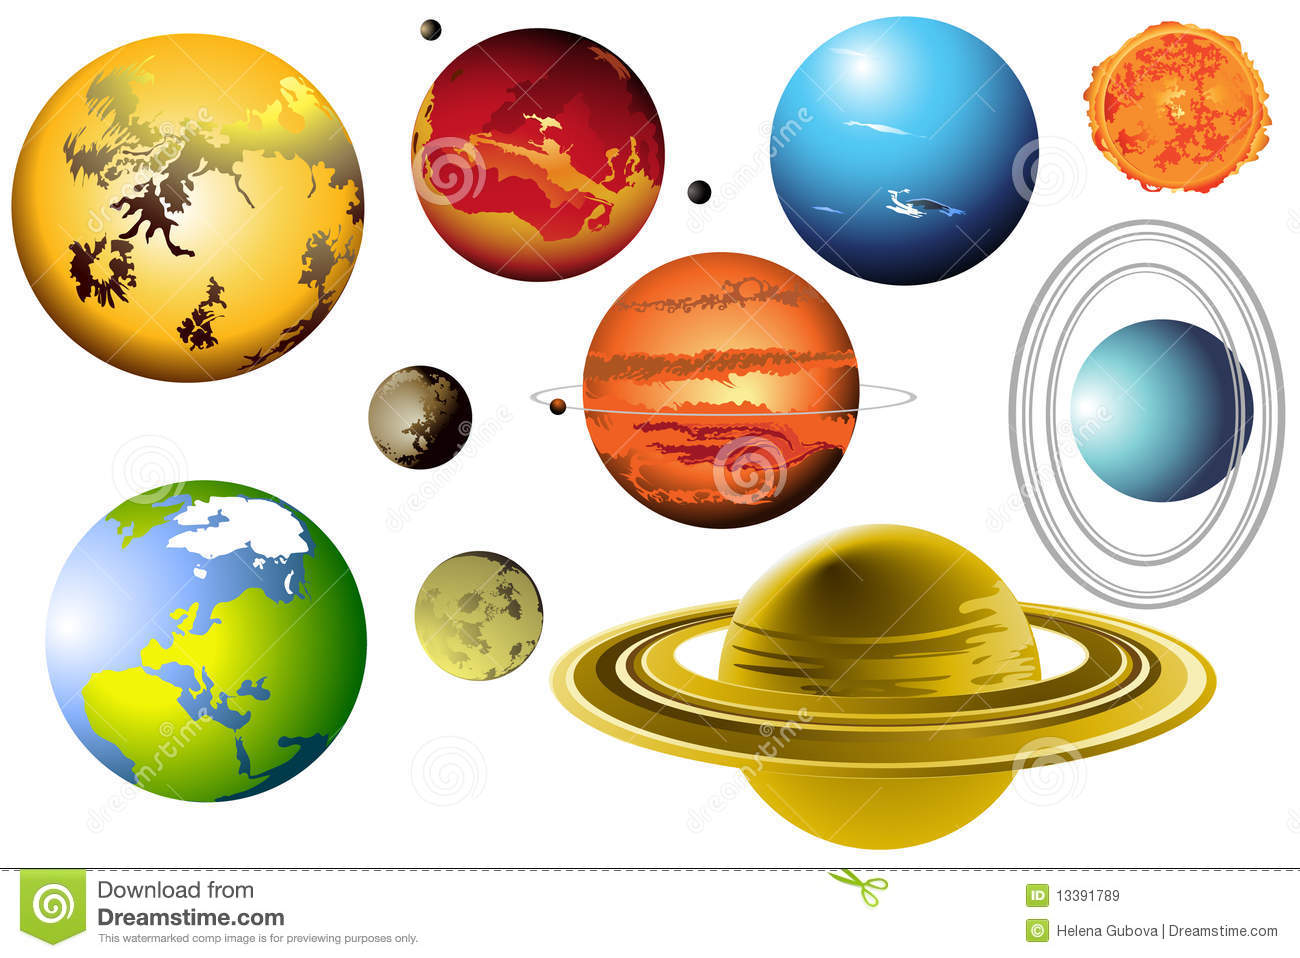 the 9 planets clip art - photo #48